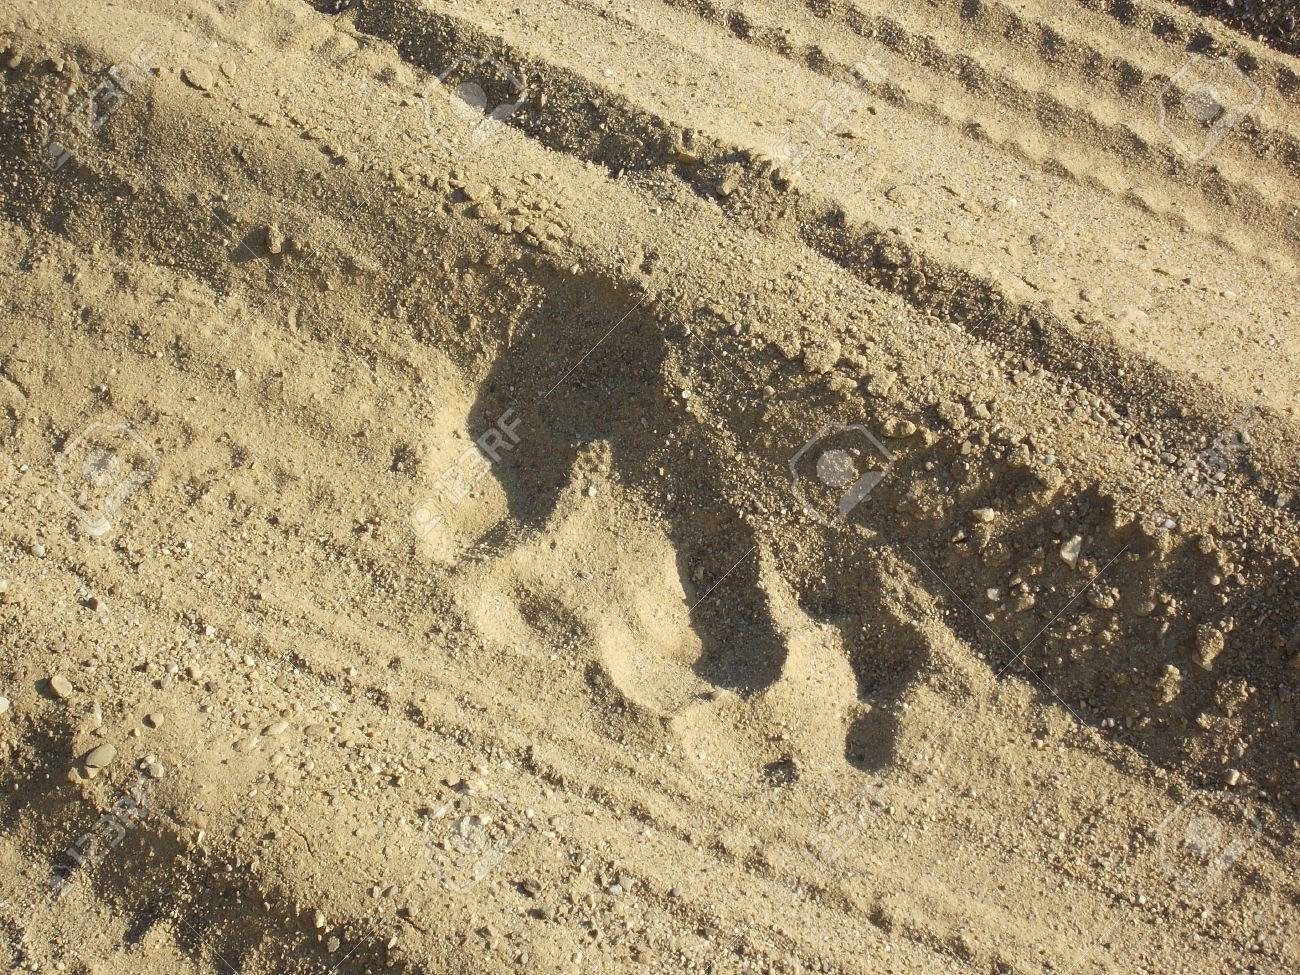 Tiger Footprints Pictures Footprint of Bengal Tiger on